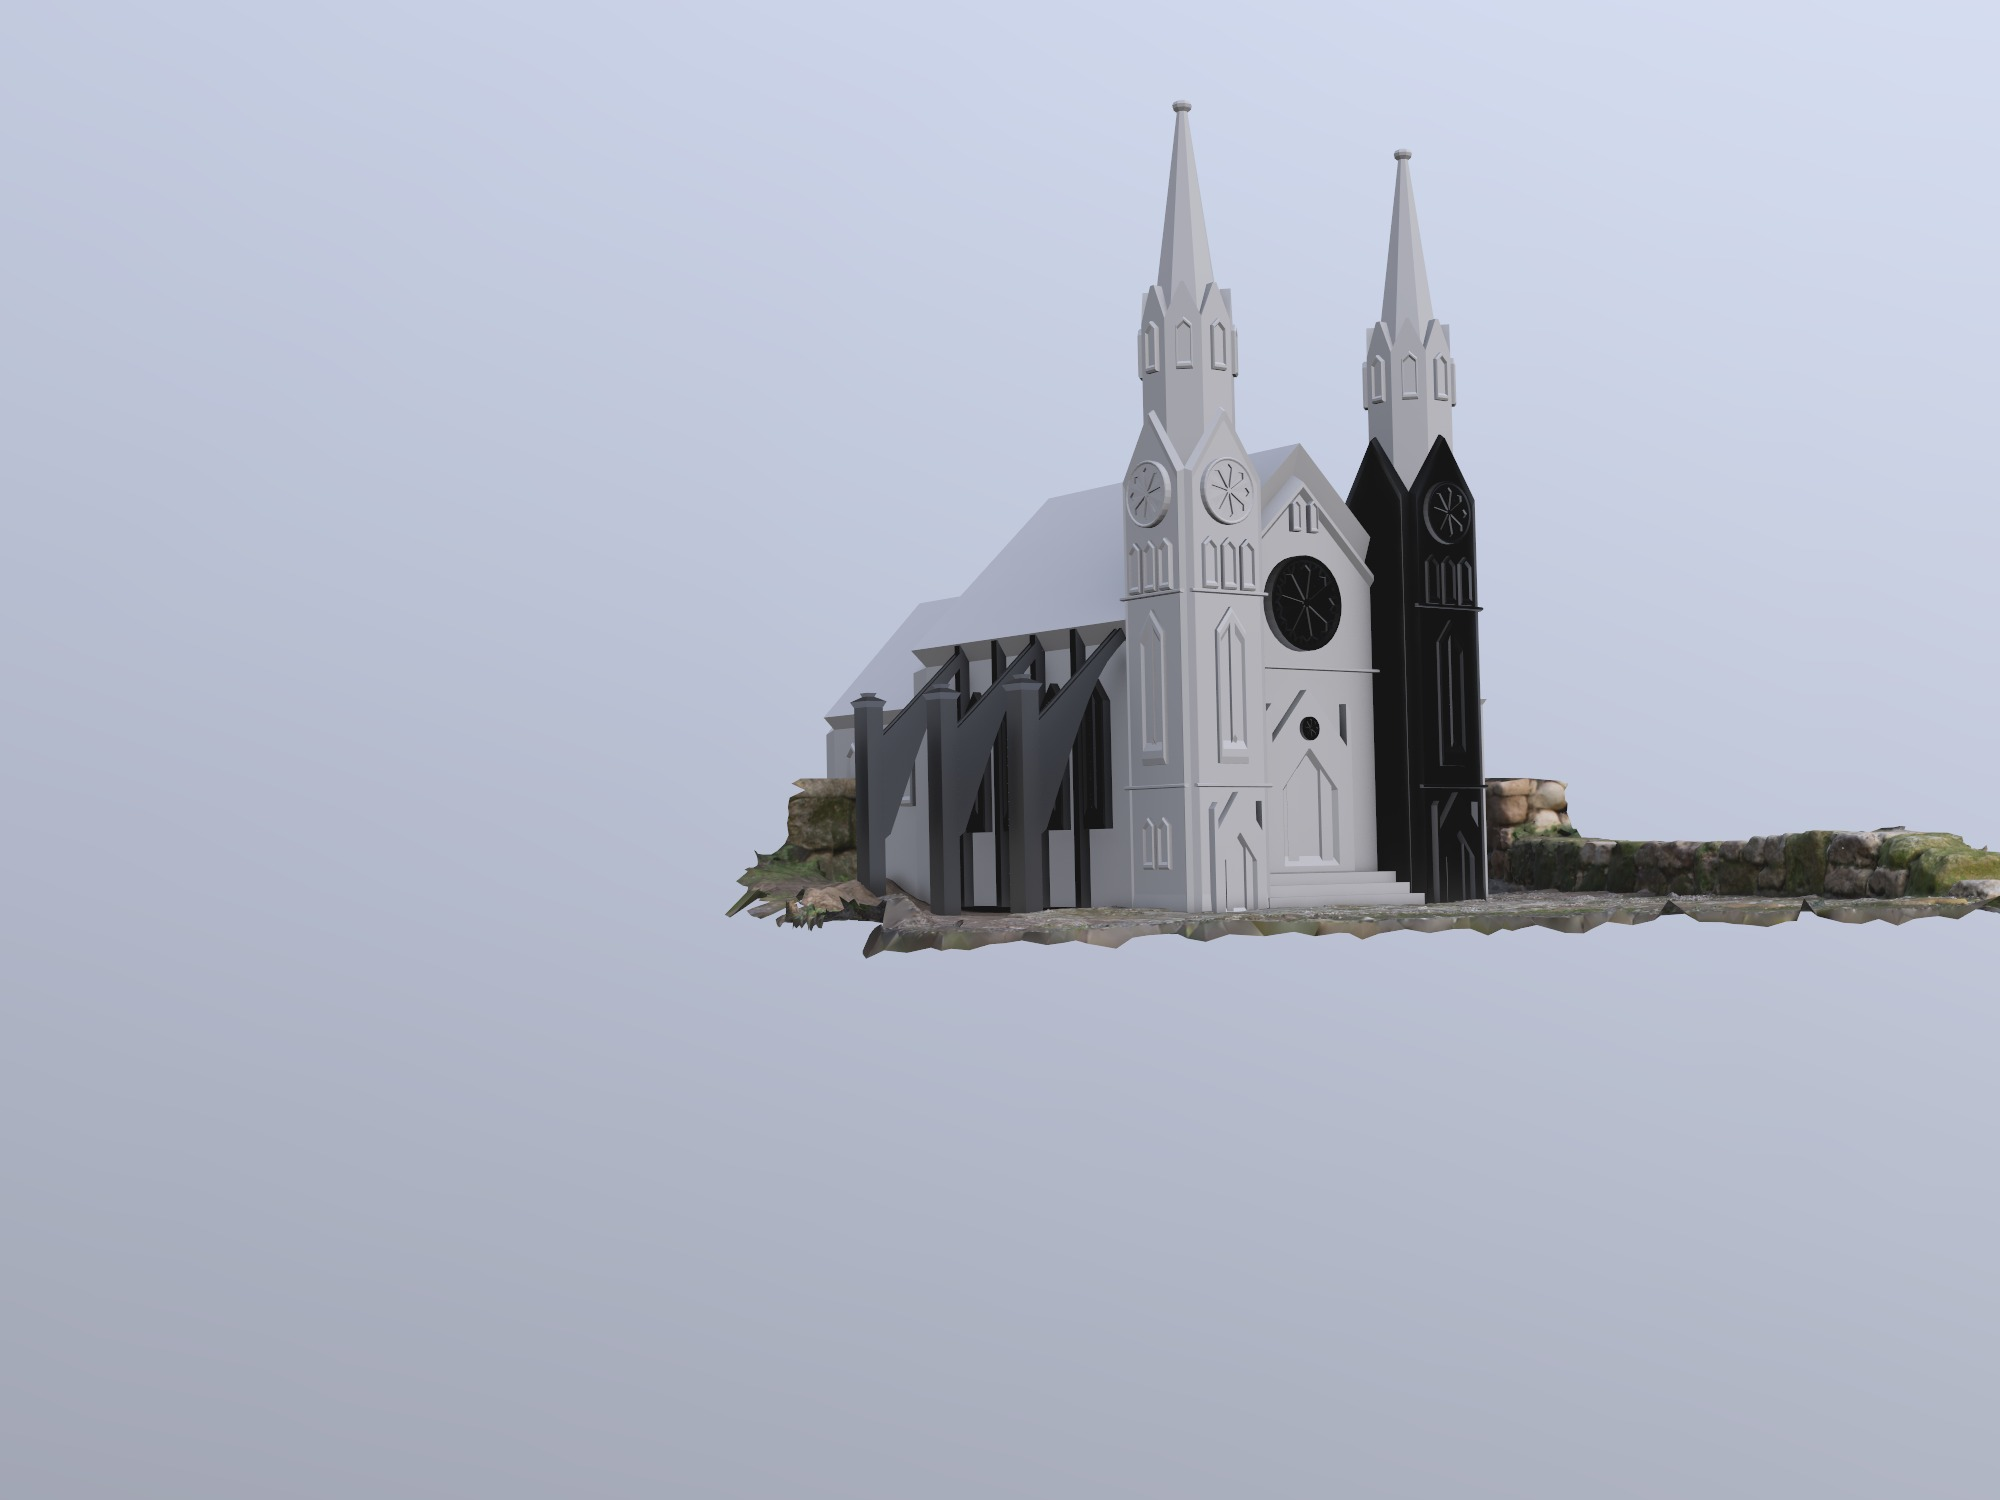 cathedral - 3D design by sandral15 on Dec 13, 2018